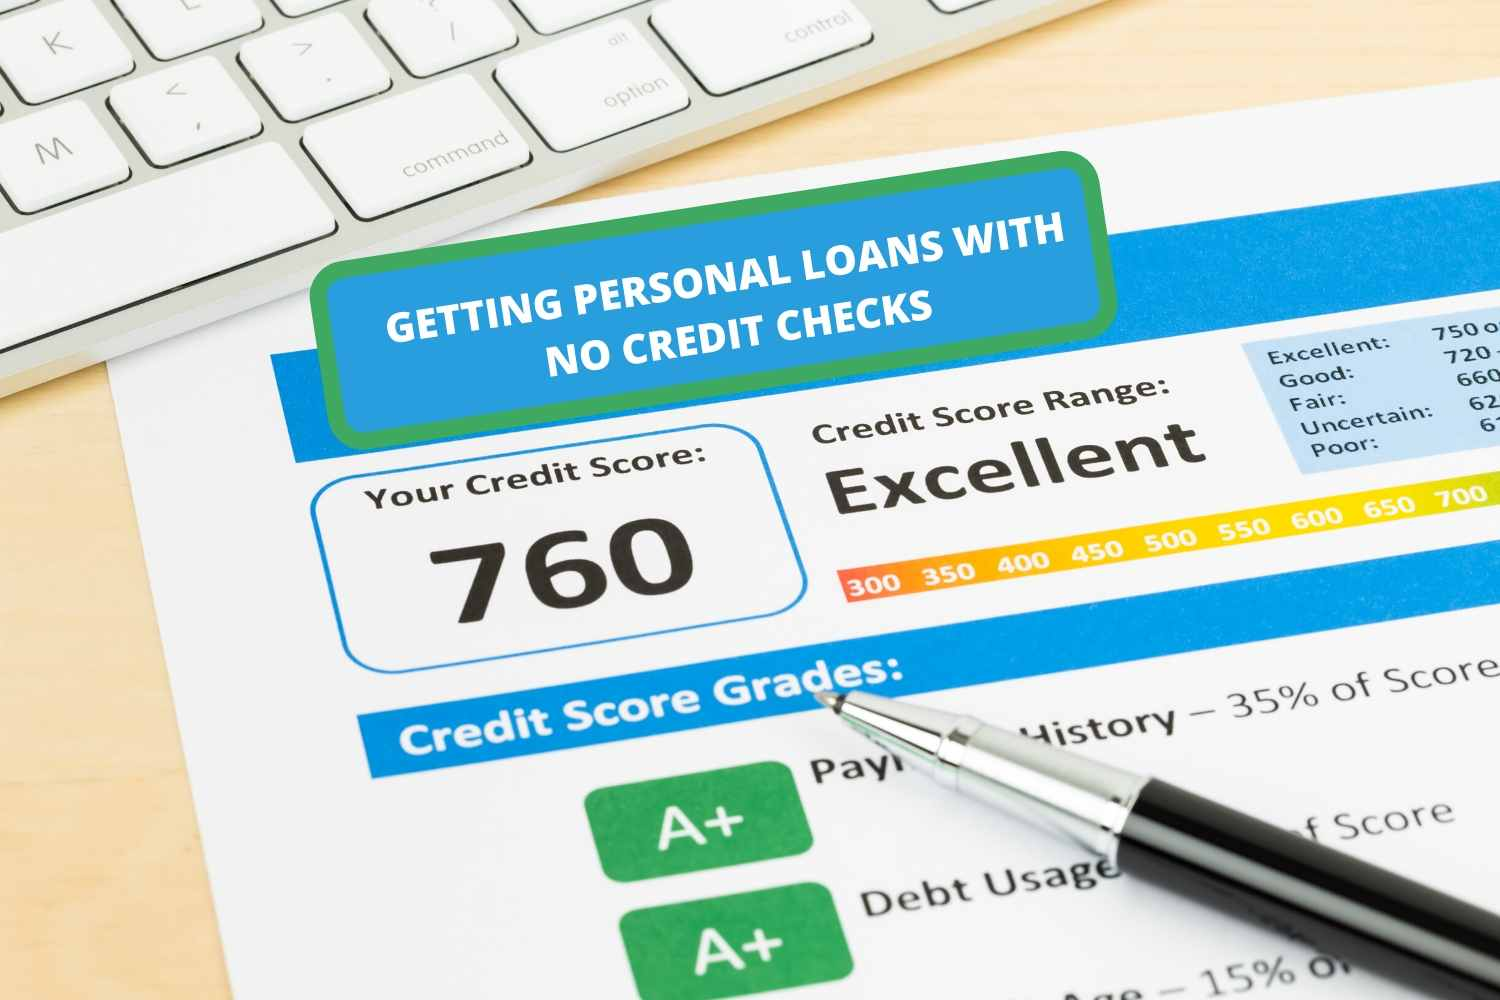 Getting Personal Loans With No Credit Checks - FinancialGuide7